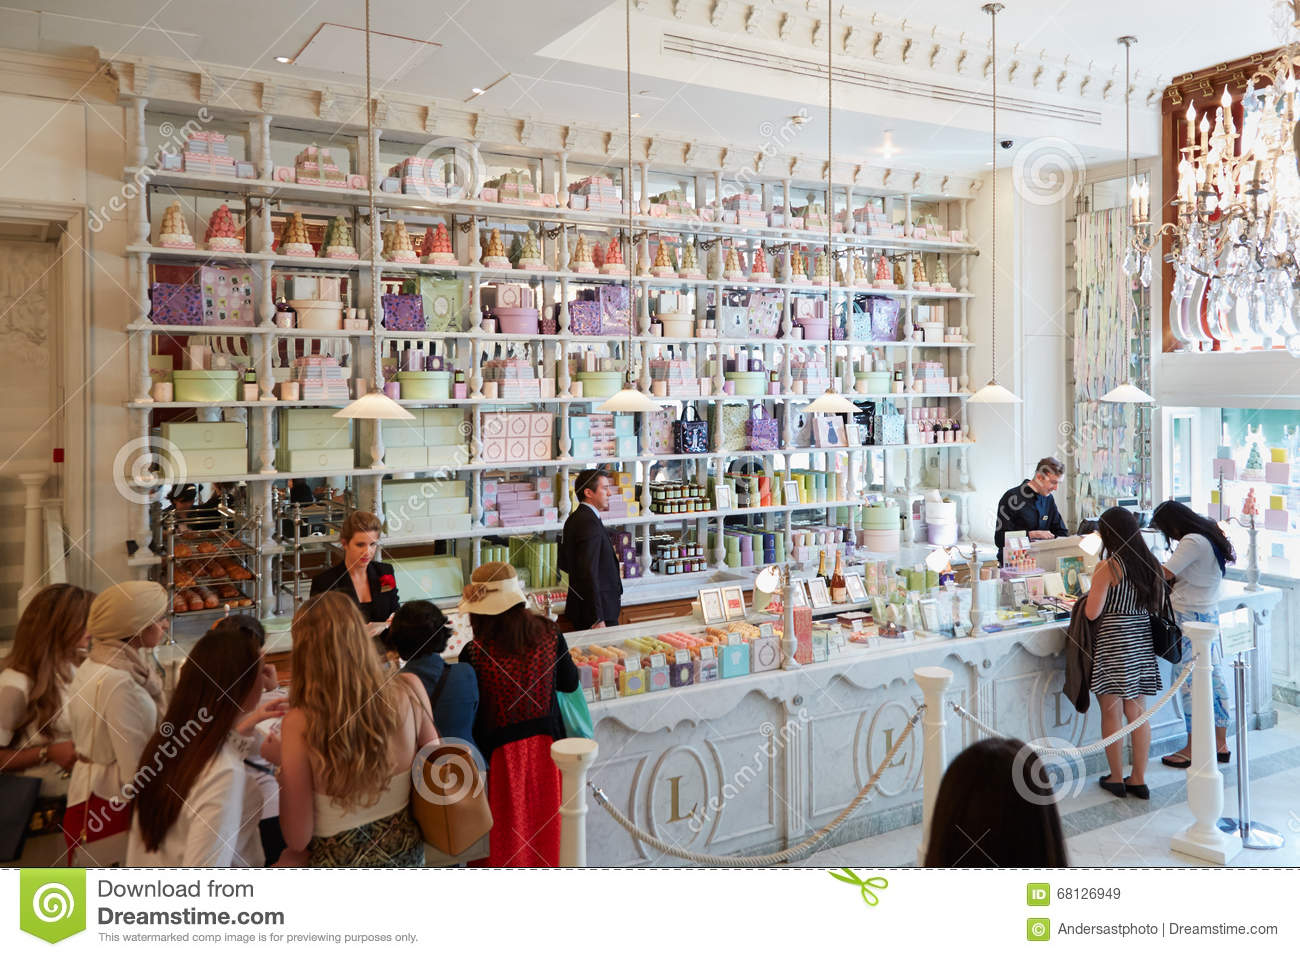 9fb40c3aef28f Intérieur de boutique de Laduree dans le magasin de Harrods le 7 août 2015  à Londres, R-U Harrods est le plus grand magasin en Europe